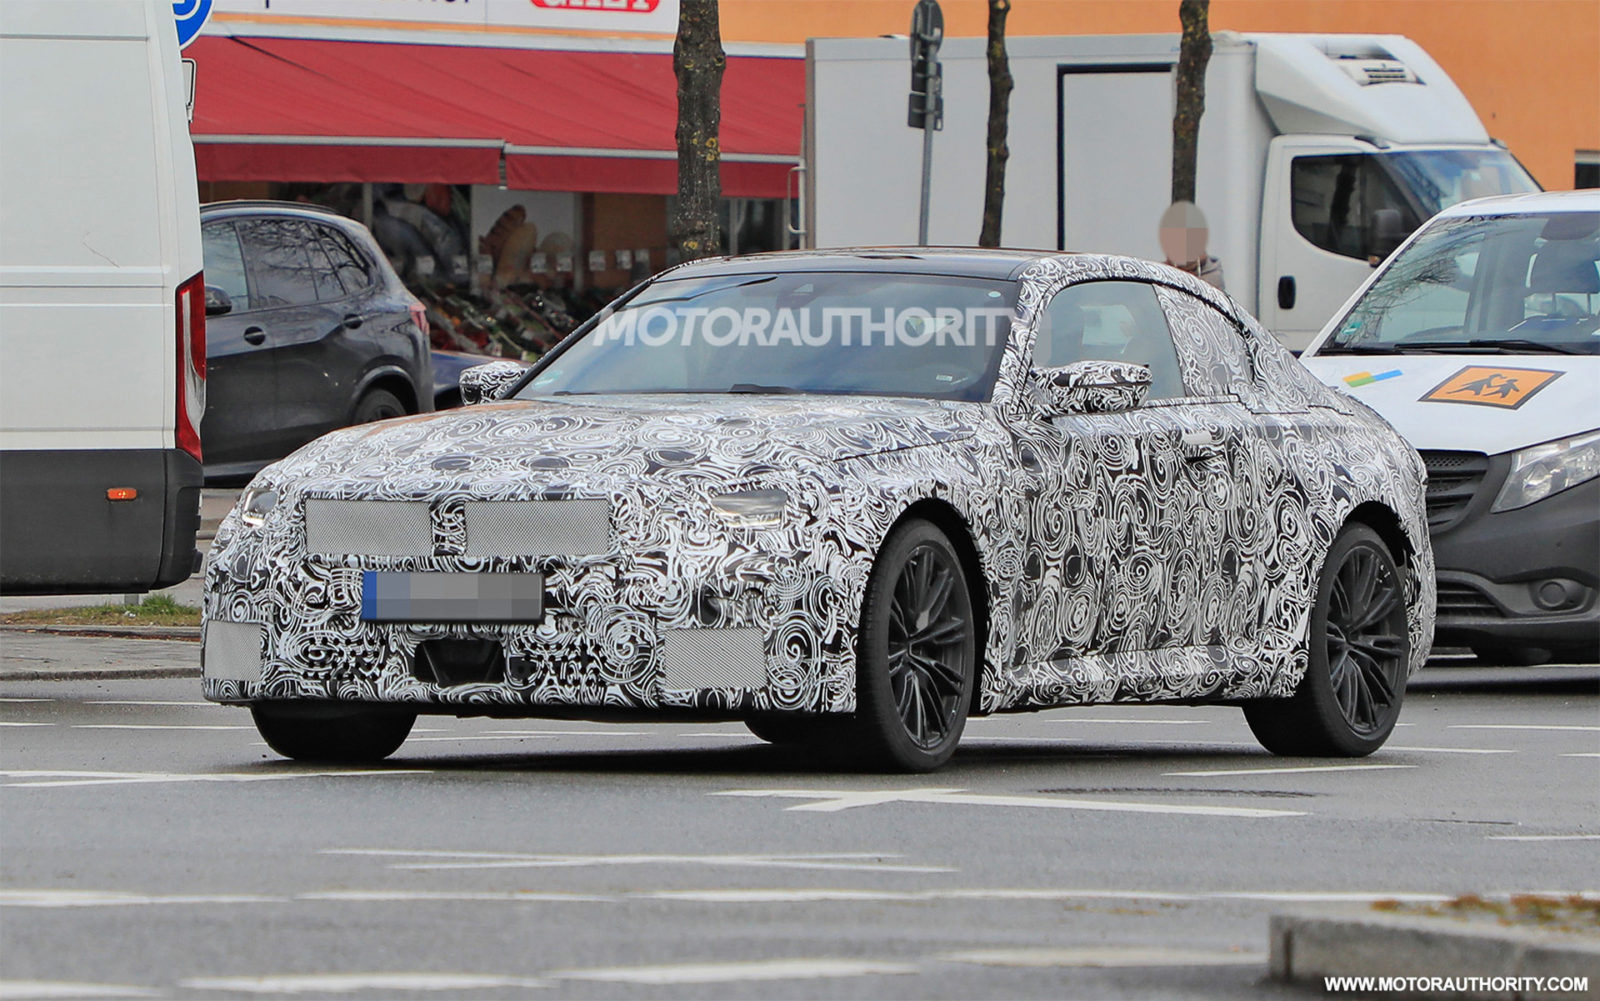 2023-bmw-m2-spy-shots:-next-generation-of-driver's-coupe-spotted